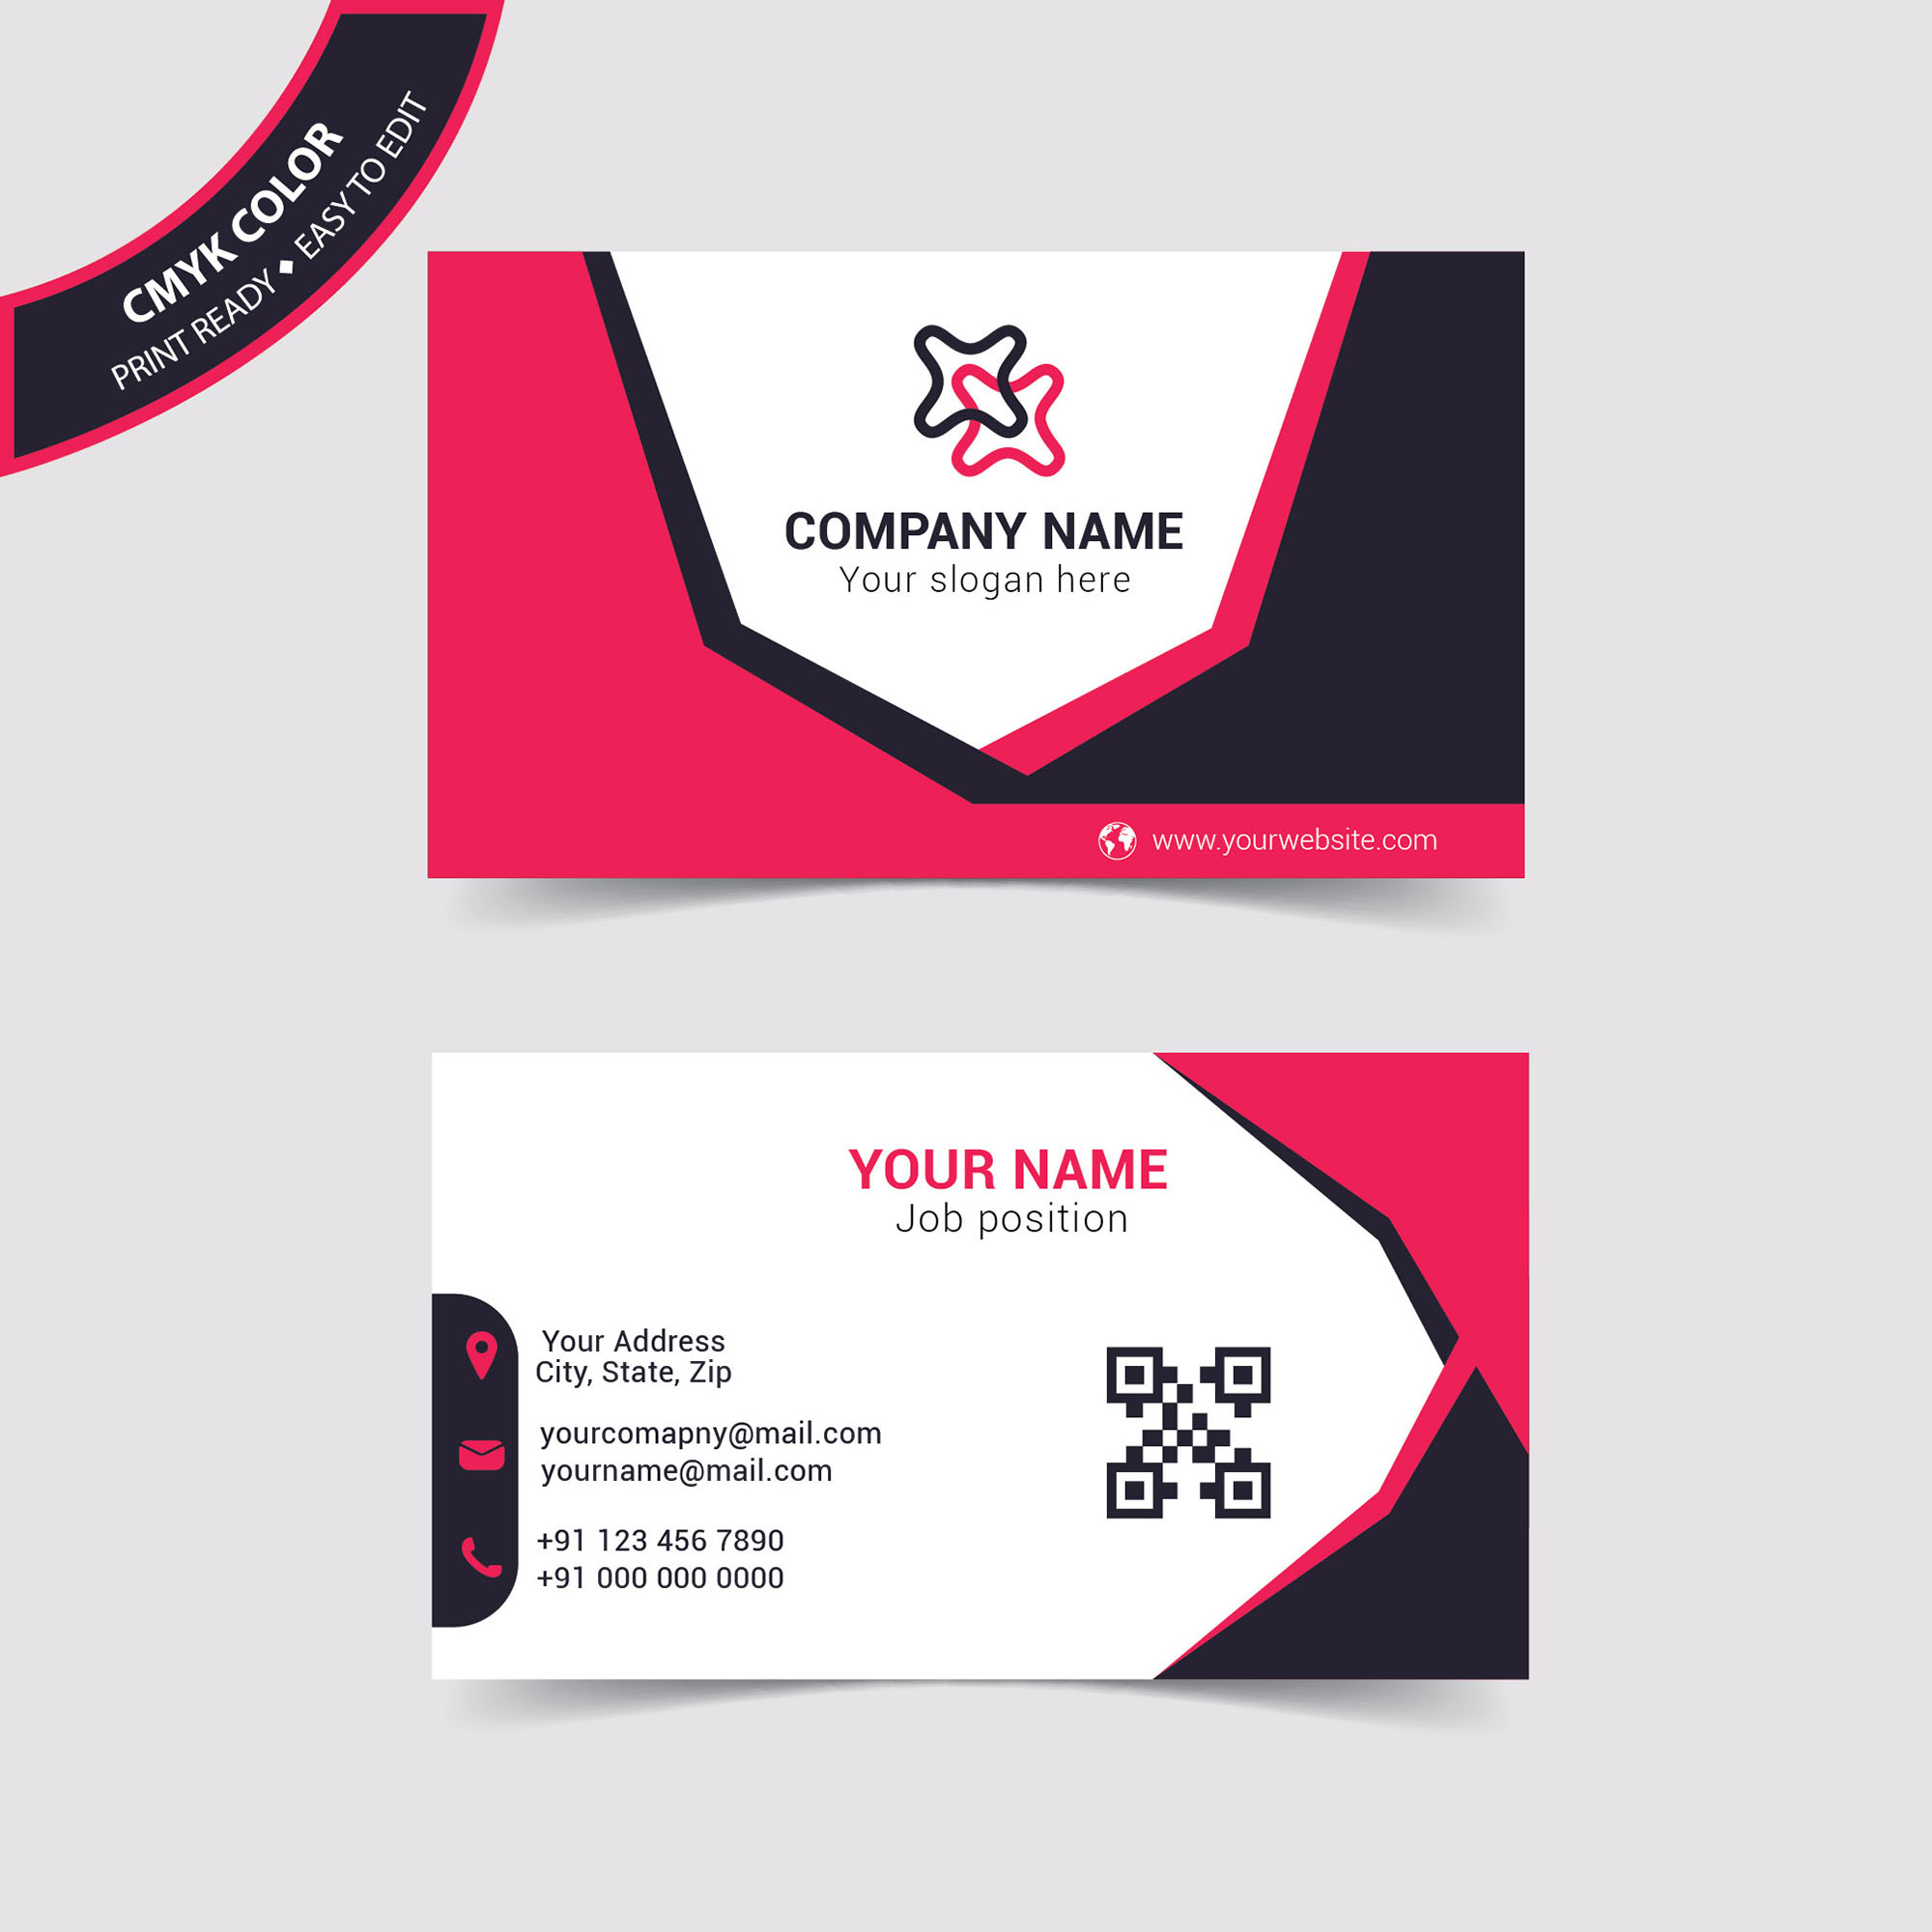 Personal name card design free download print template wisxi business card business cards business card design business card template design templates reheart Choice Image